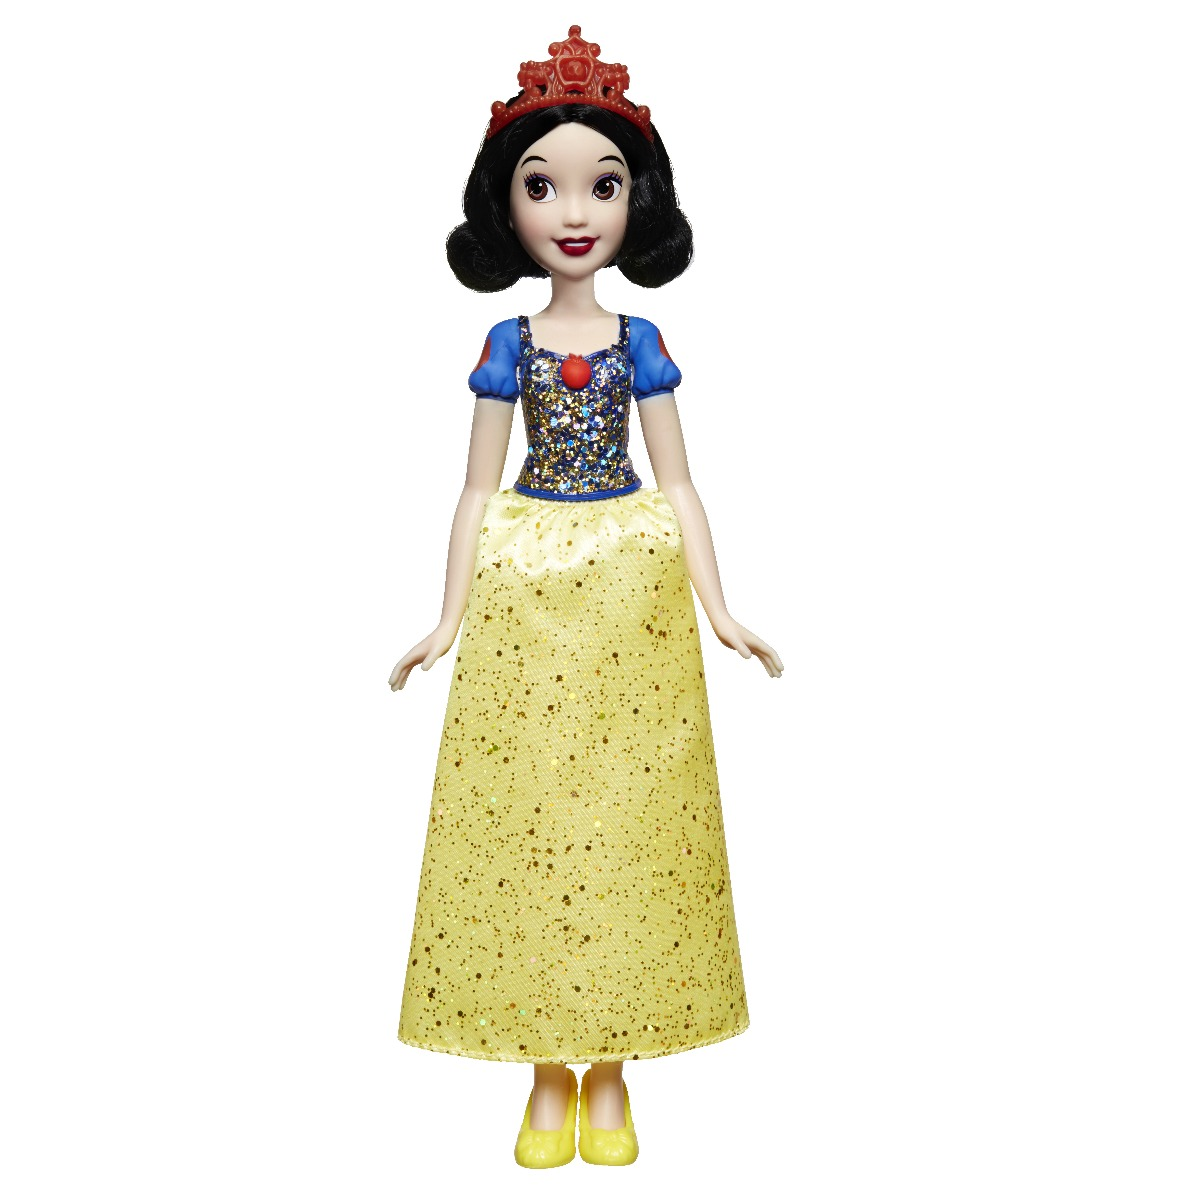 Papusa Disney Princess - Shimmer Fashion - Alba ca Zapada